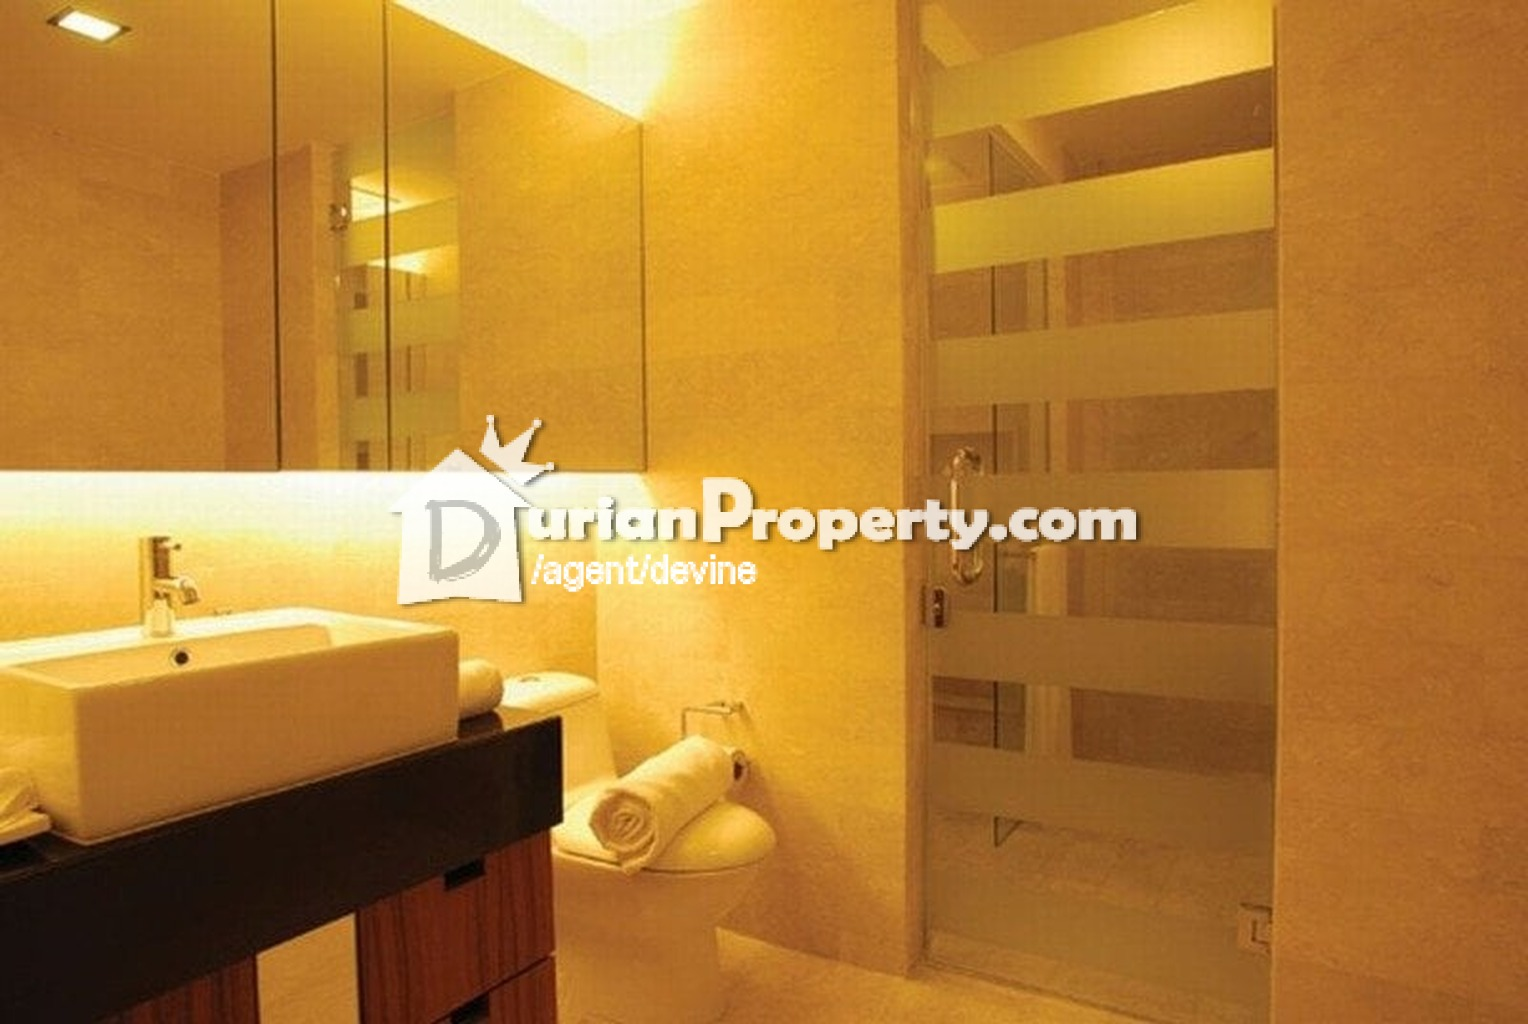 Condo For Sale at myHabitat, KLCC